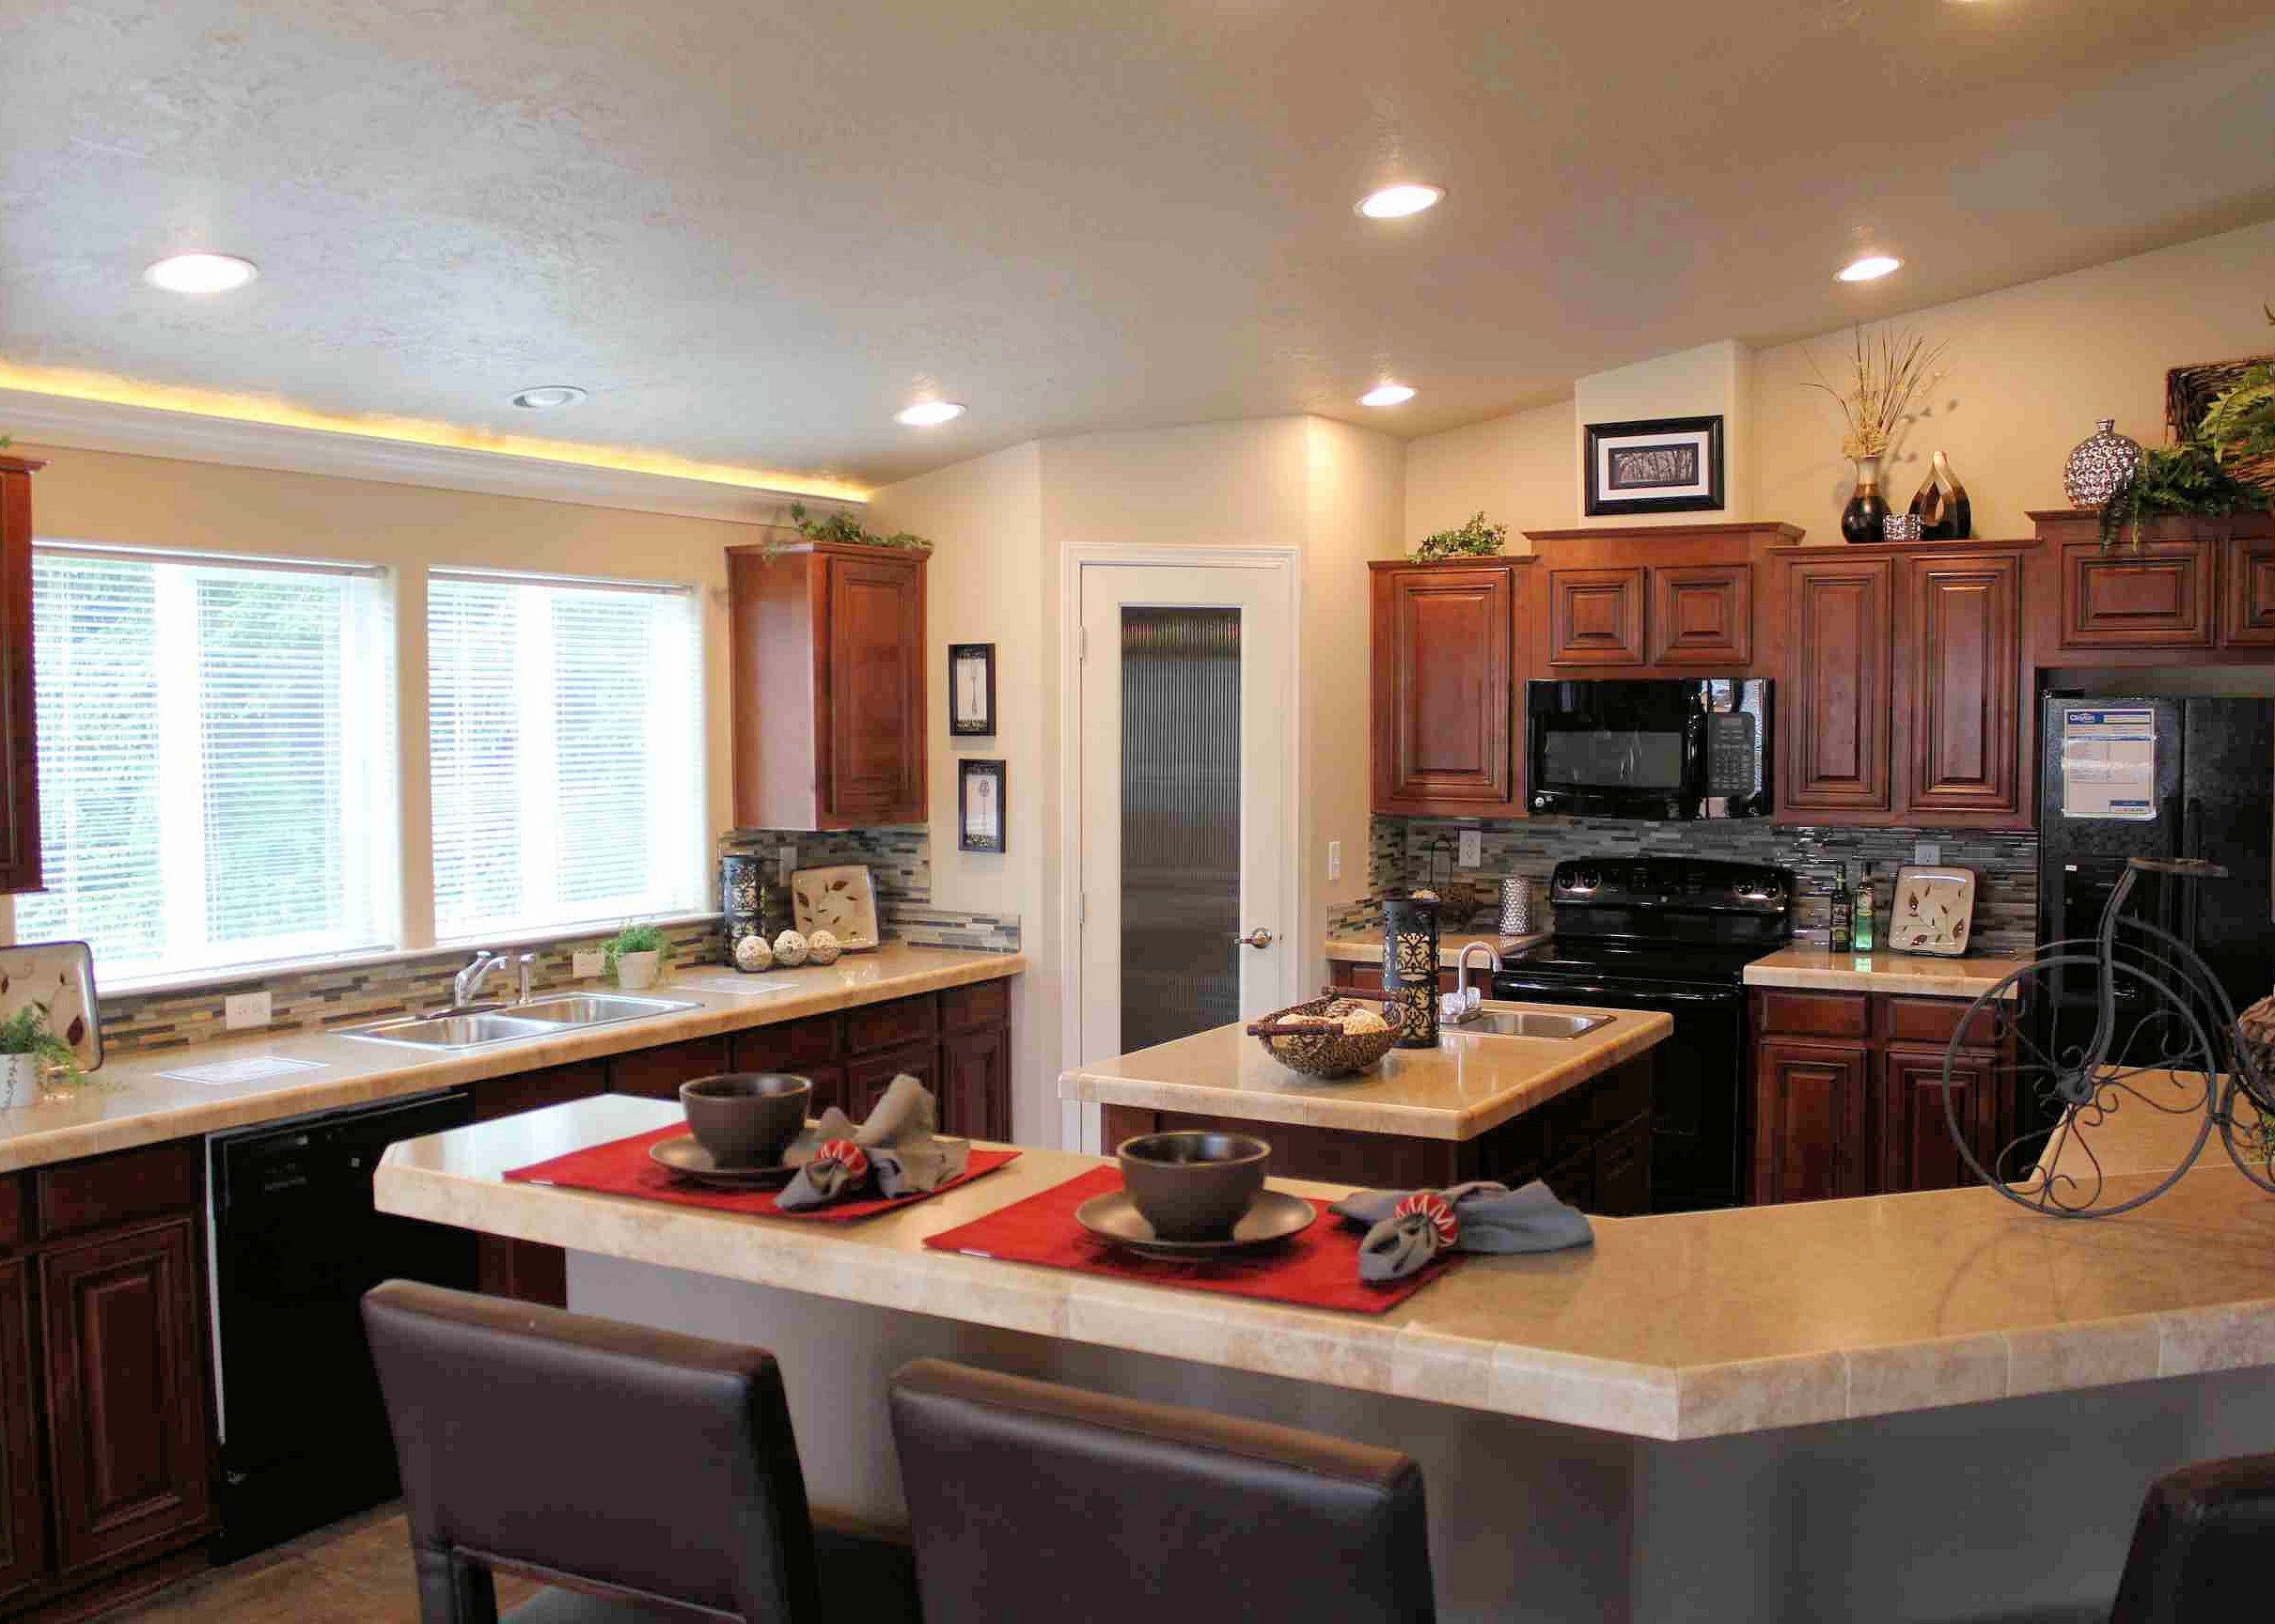 clayton homes our manufactured and modular homes modular clayton homes our manufactured and modular homes modular mobile homes pinterest house kitchens and house remodeling